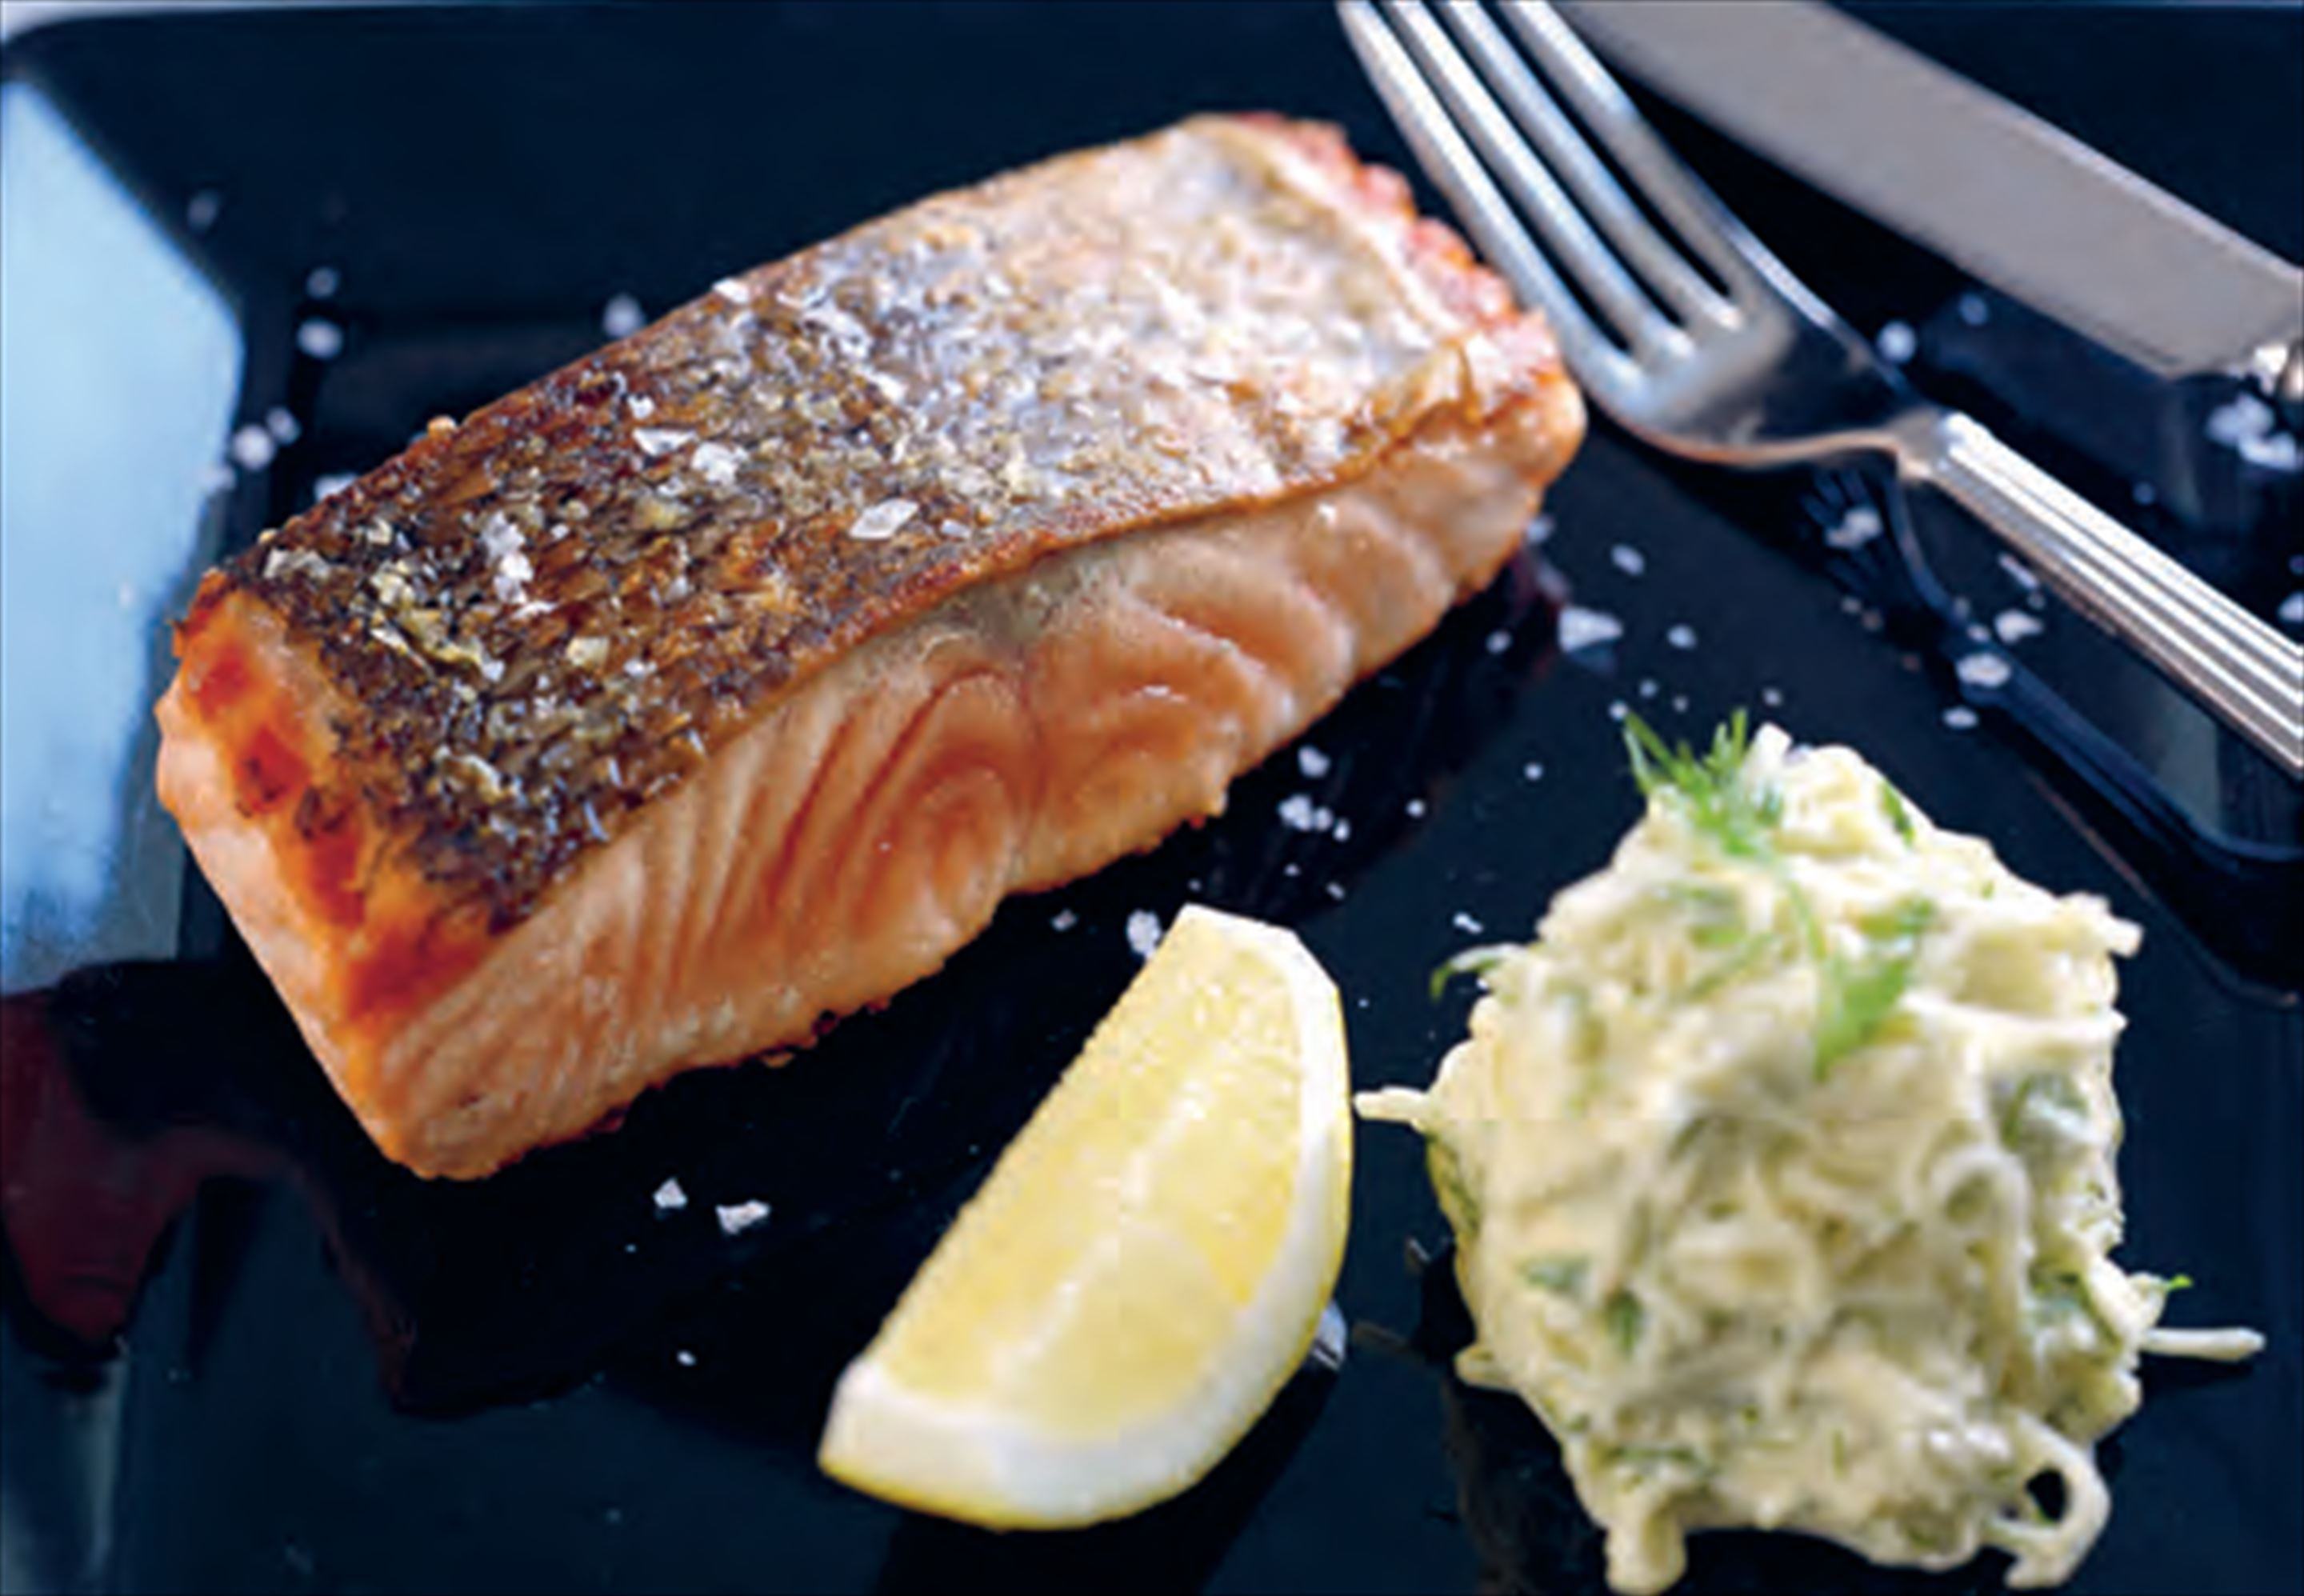 Pan-seared salmon with celeriac remoulade